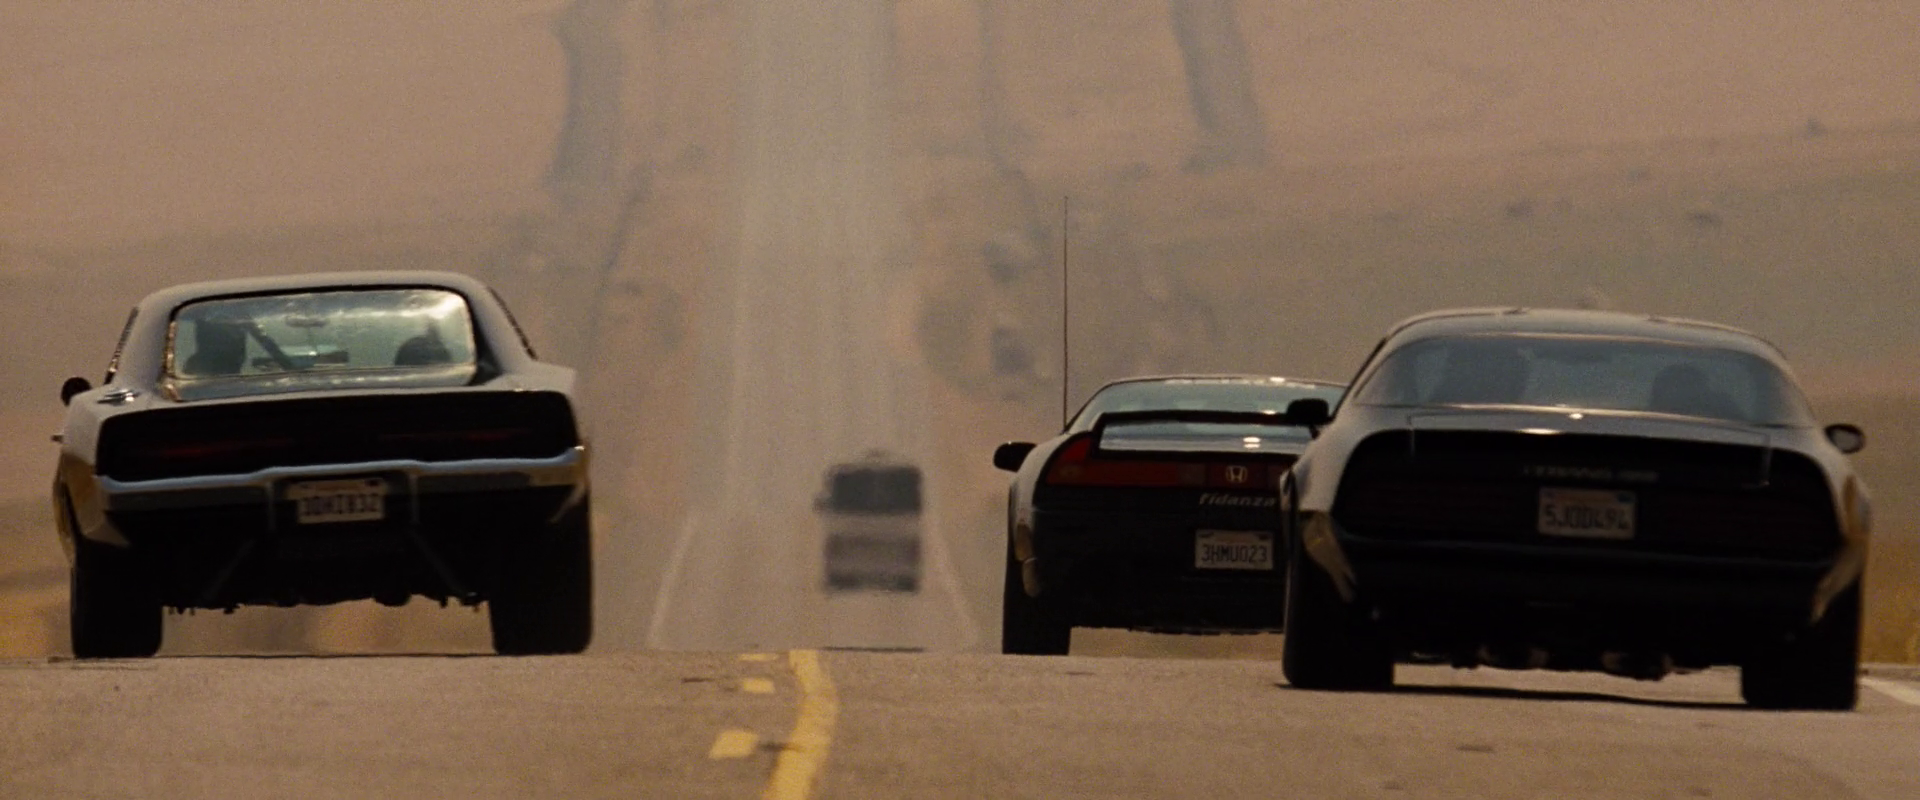 2003 Acura Nsx The Fast And The Furious Wiki Fandom